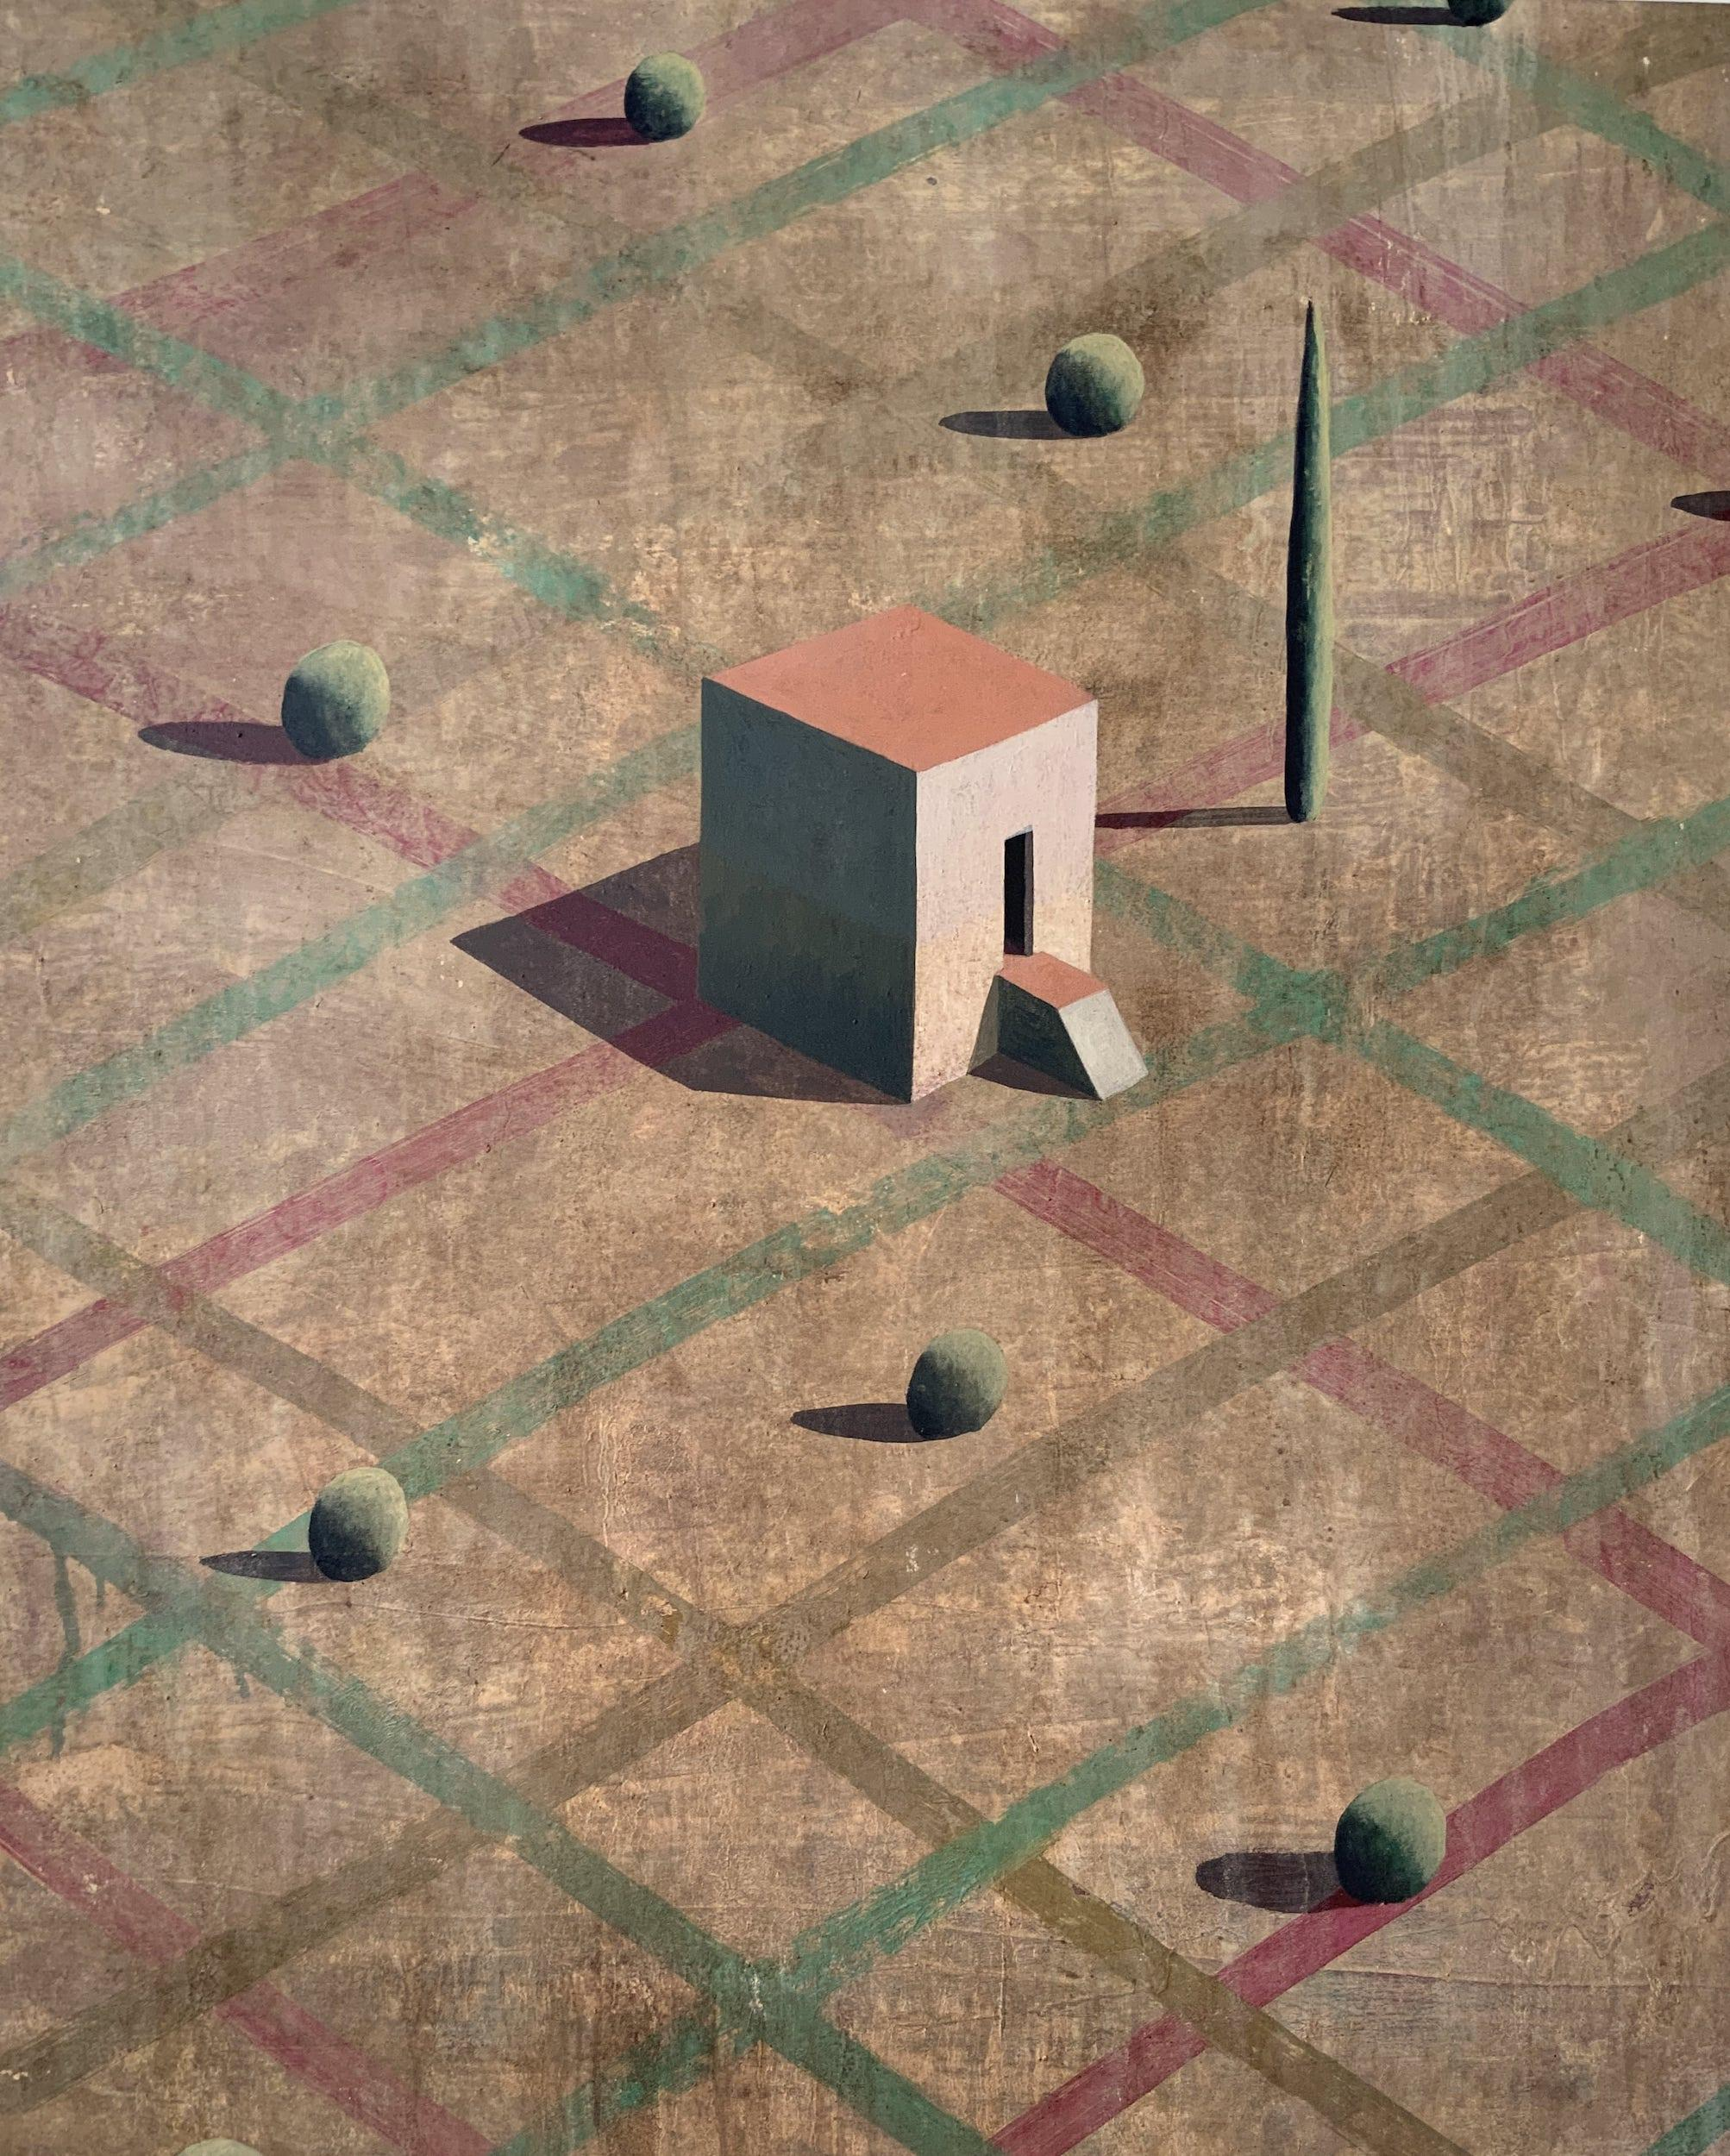 ALS ICH CHAN - Contemporary Geometric Landscape painting